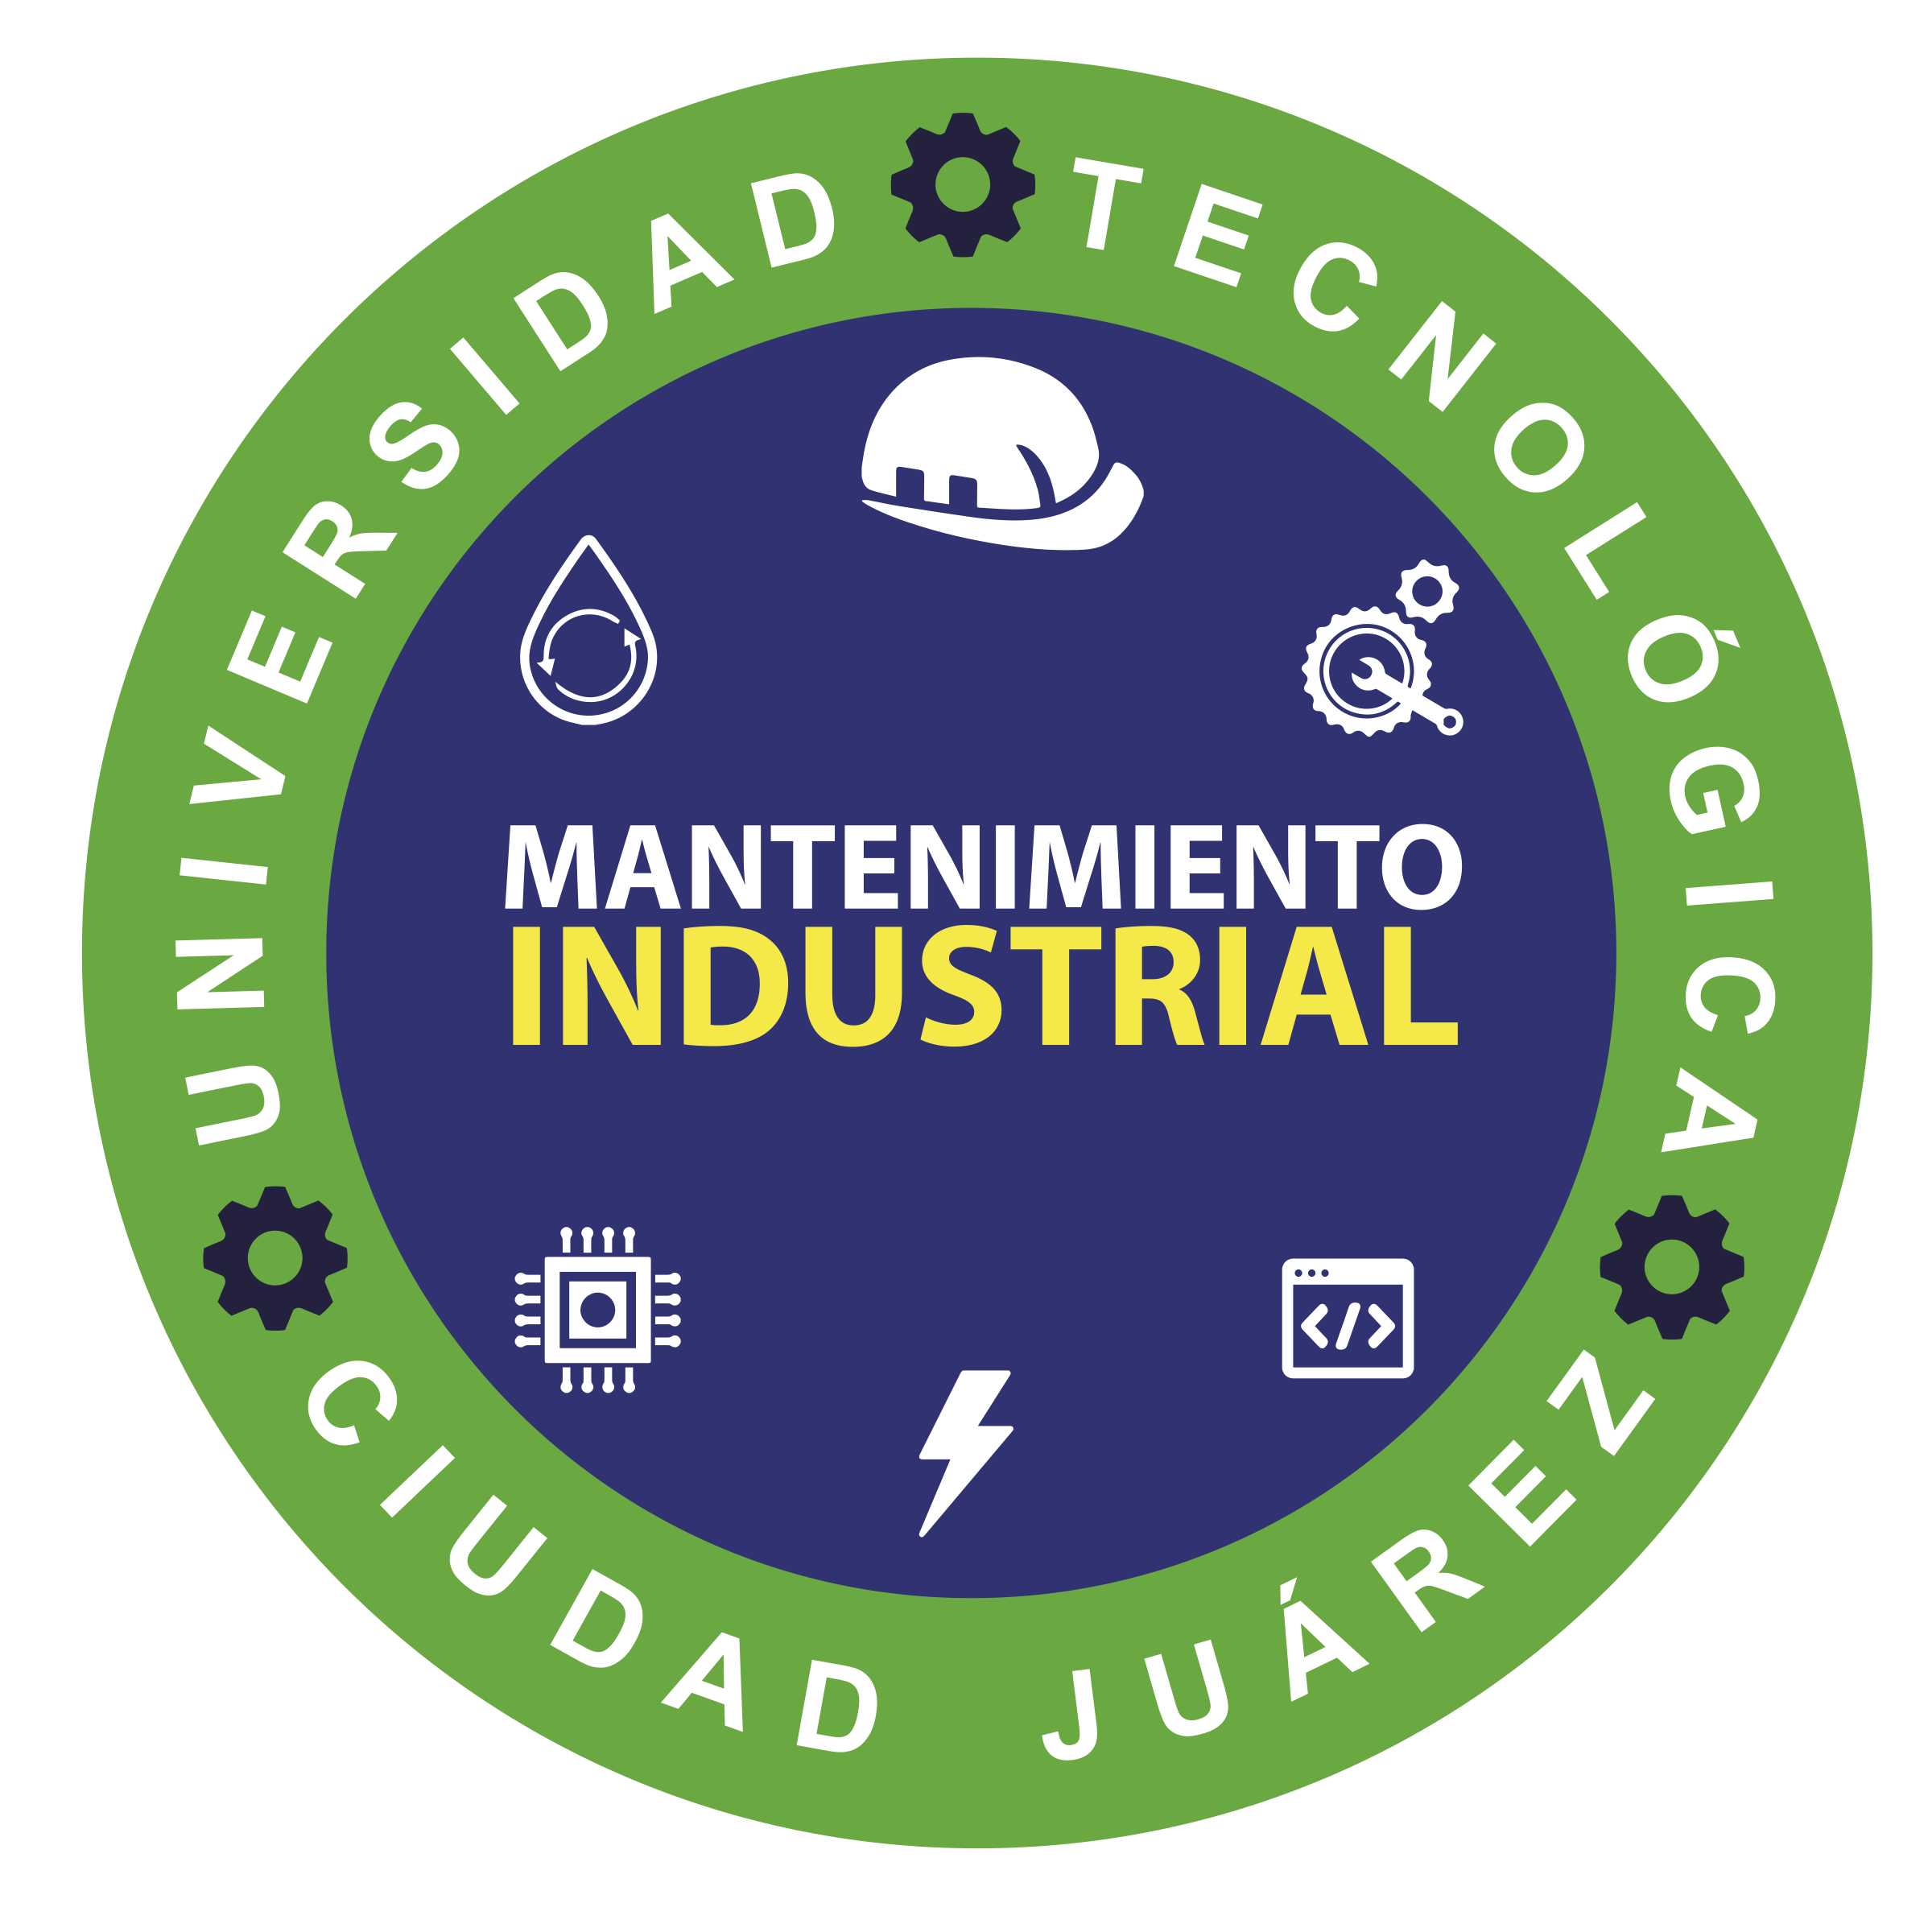 logo_Mantenimiento industrial.png